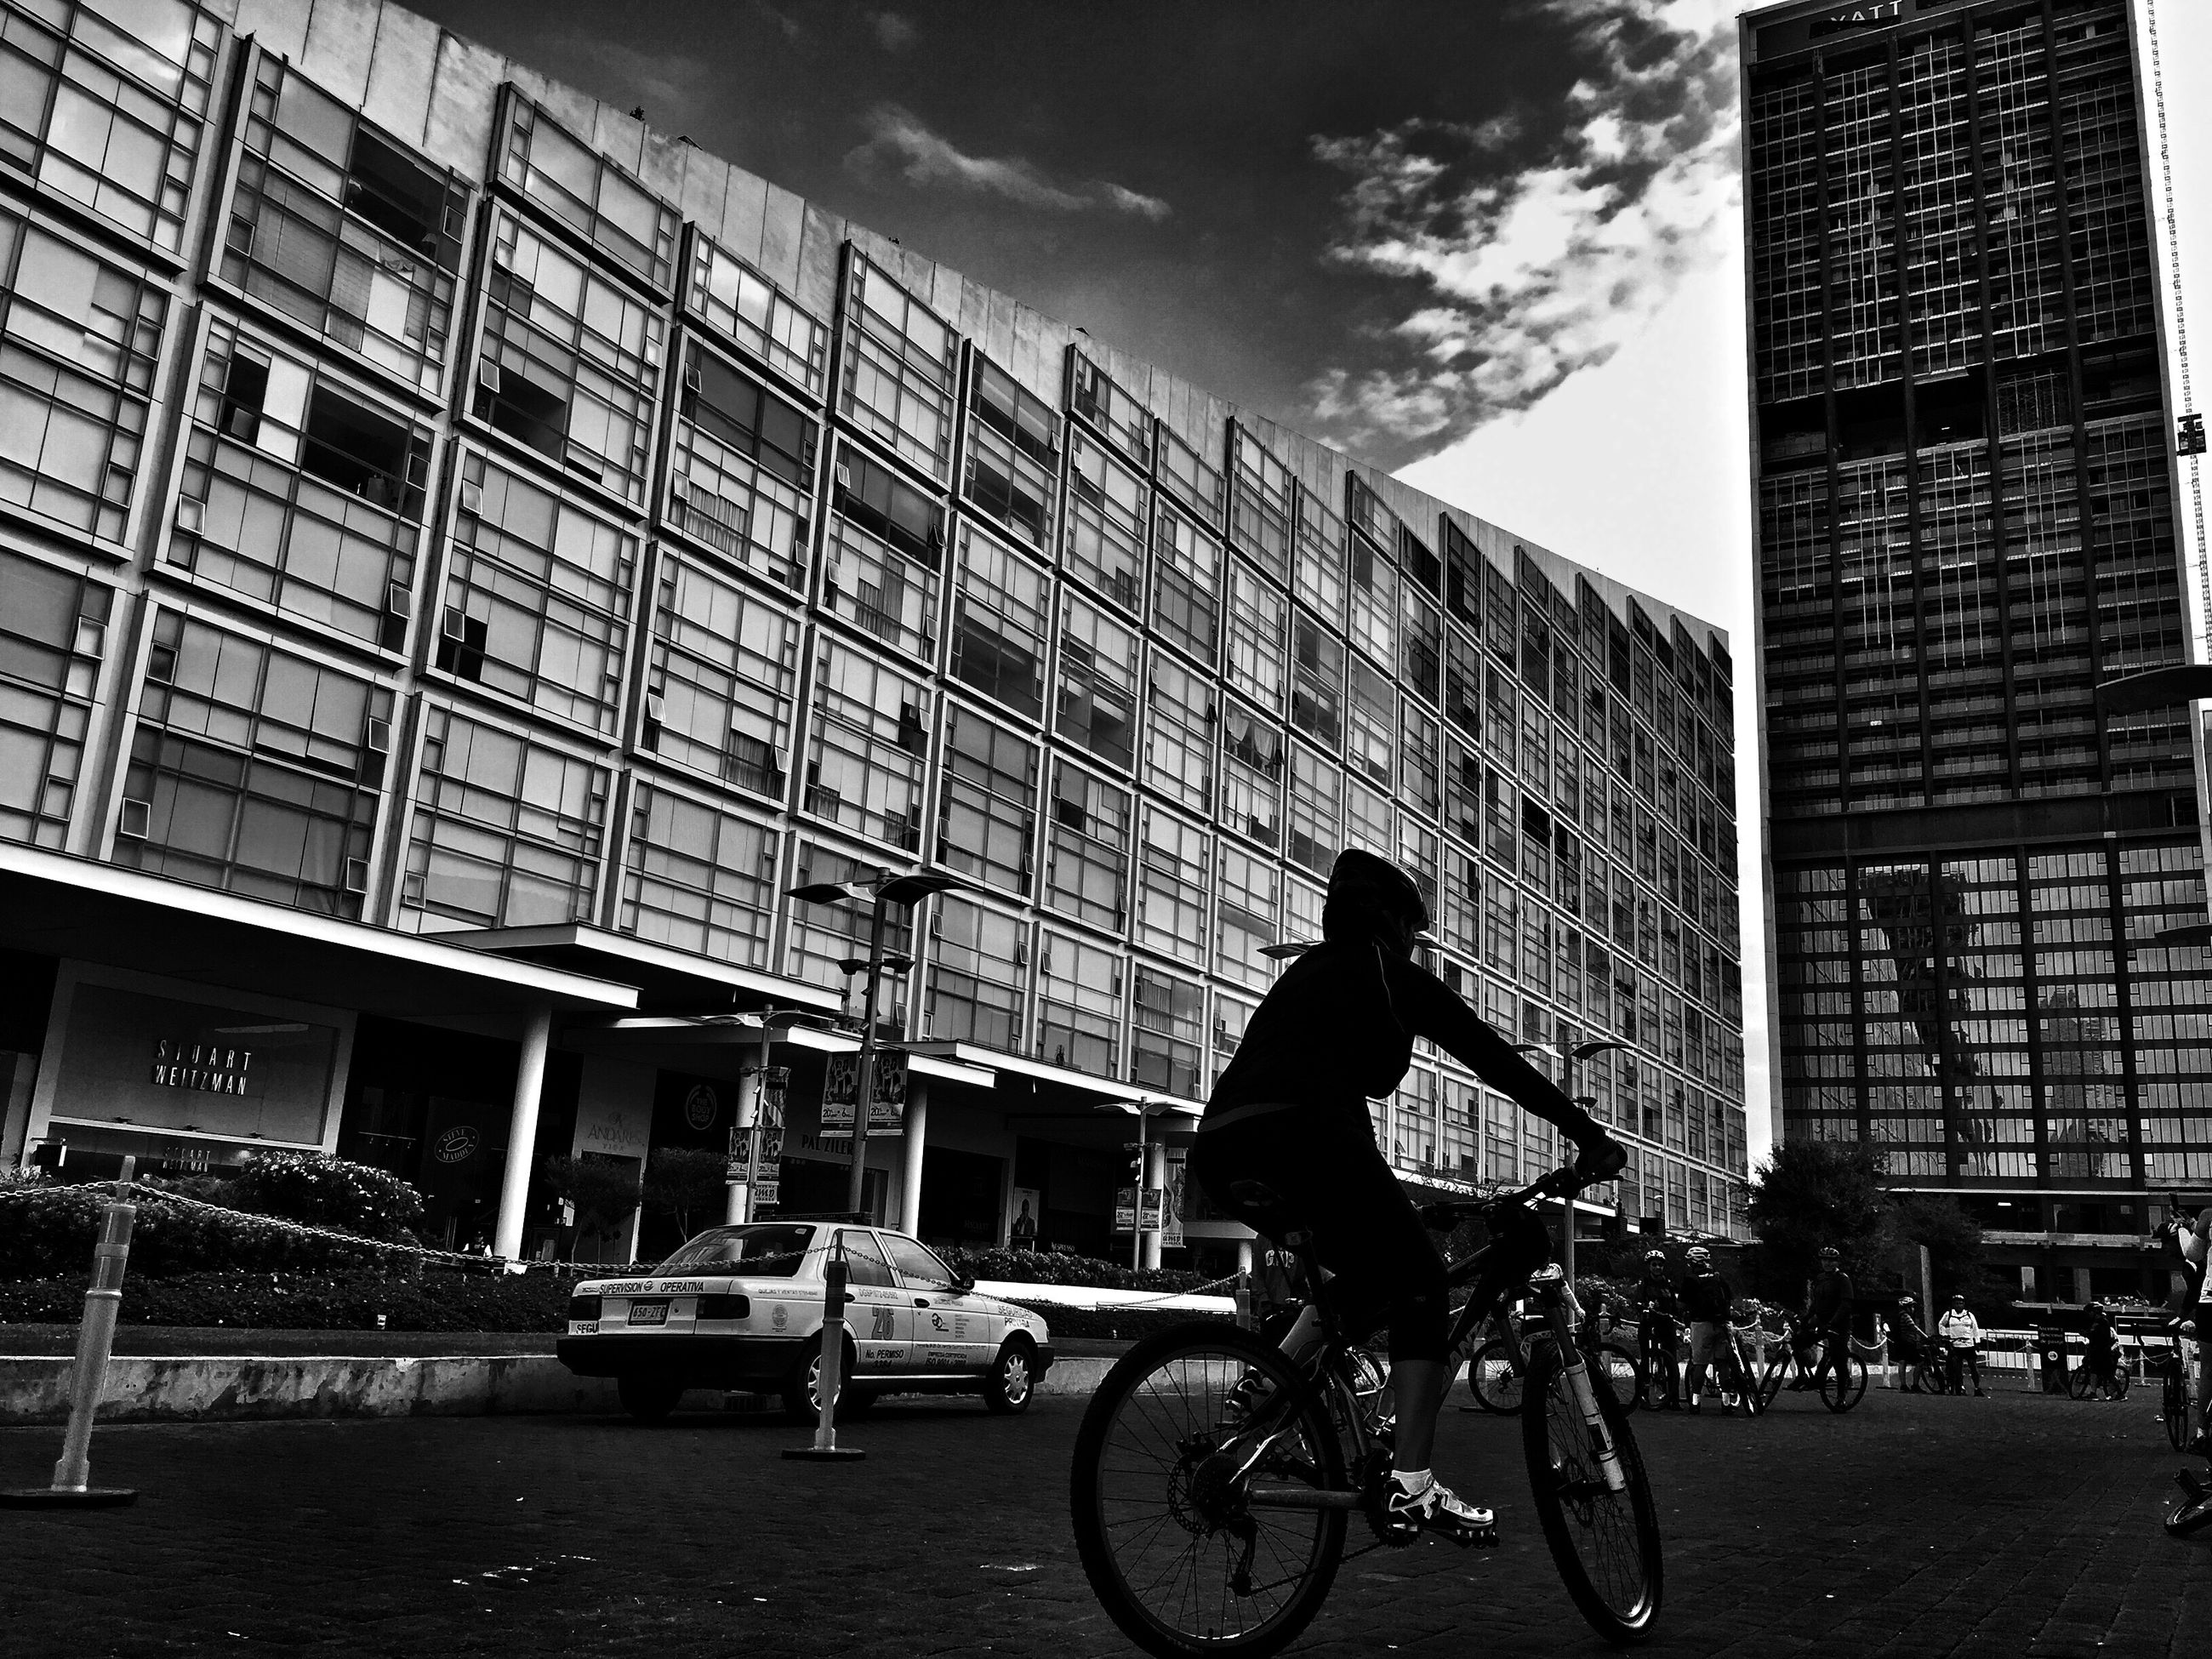 architecture, transportation, bicycle, built structure, building exterior, mode of transport, full length, city, men, on the move, land vehicle, riding, city life, leisure activity, cycling, sky, lifestyles, travel, office building, outdoors, cloud - sky, day, tall - high